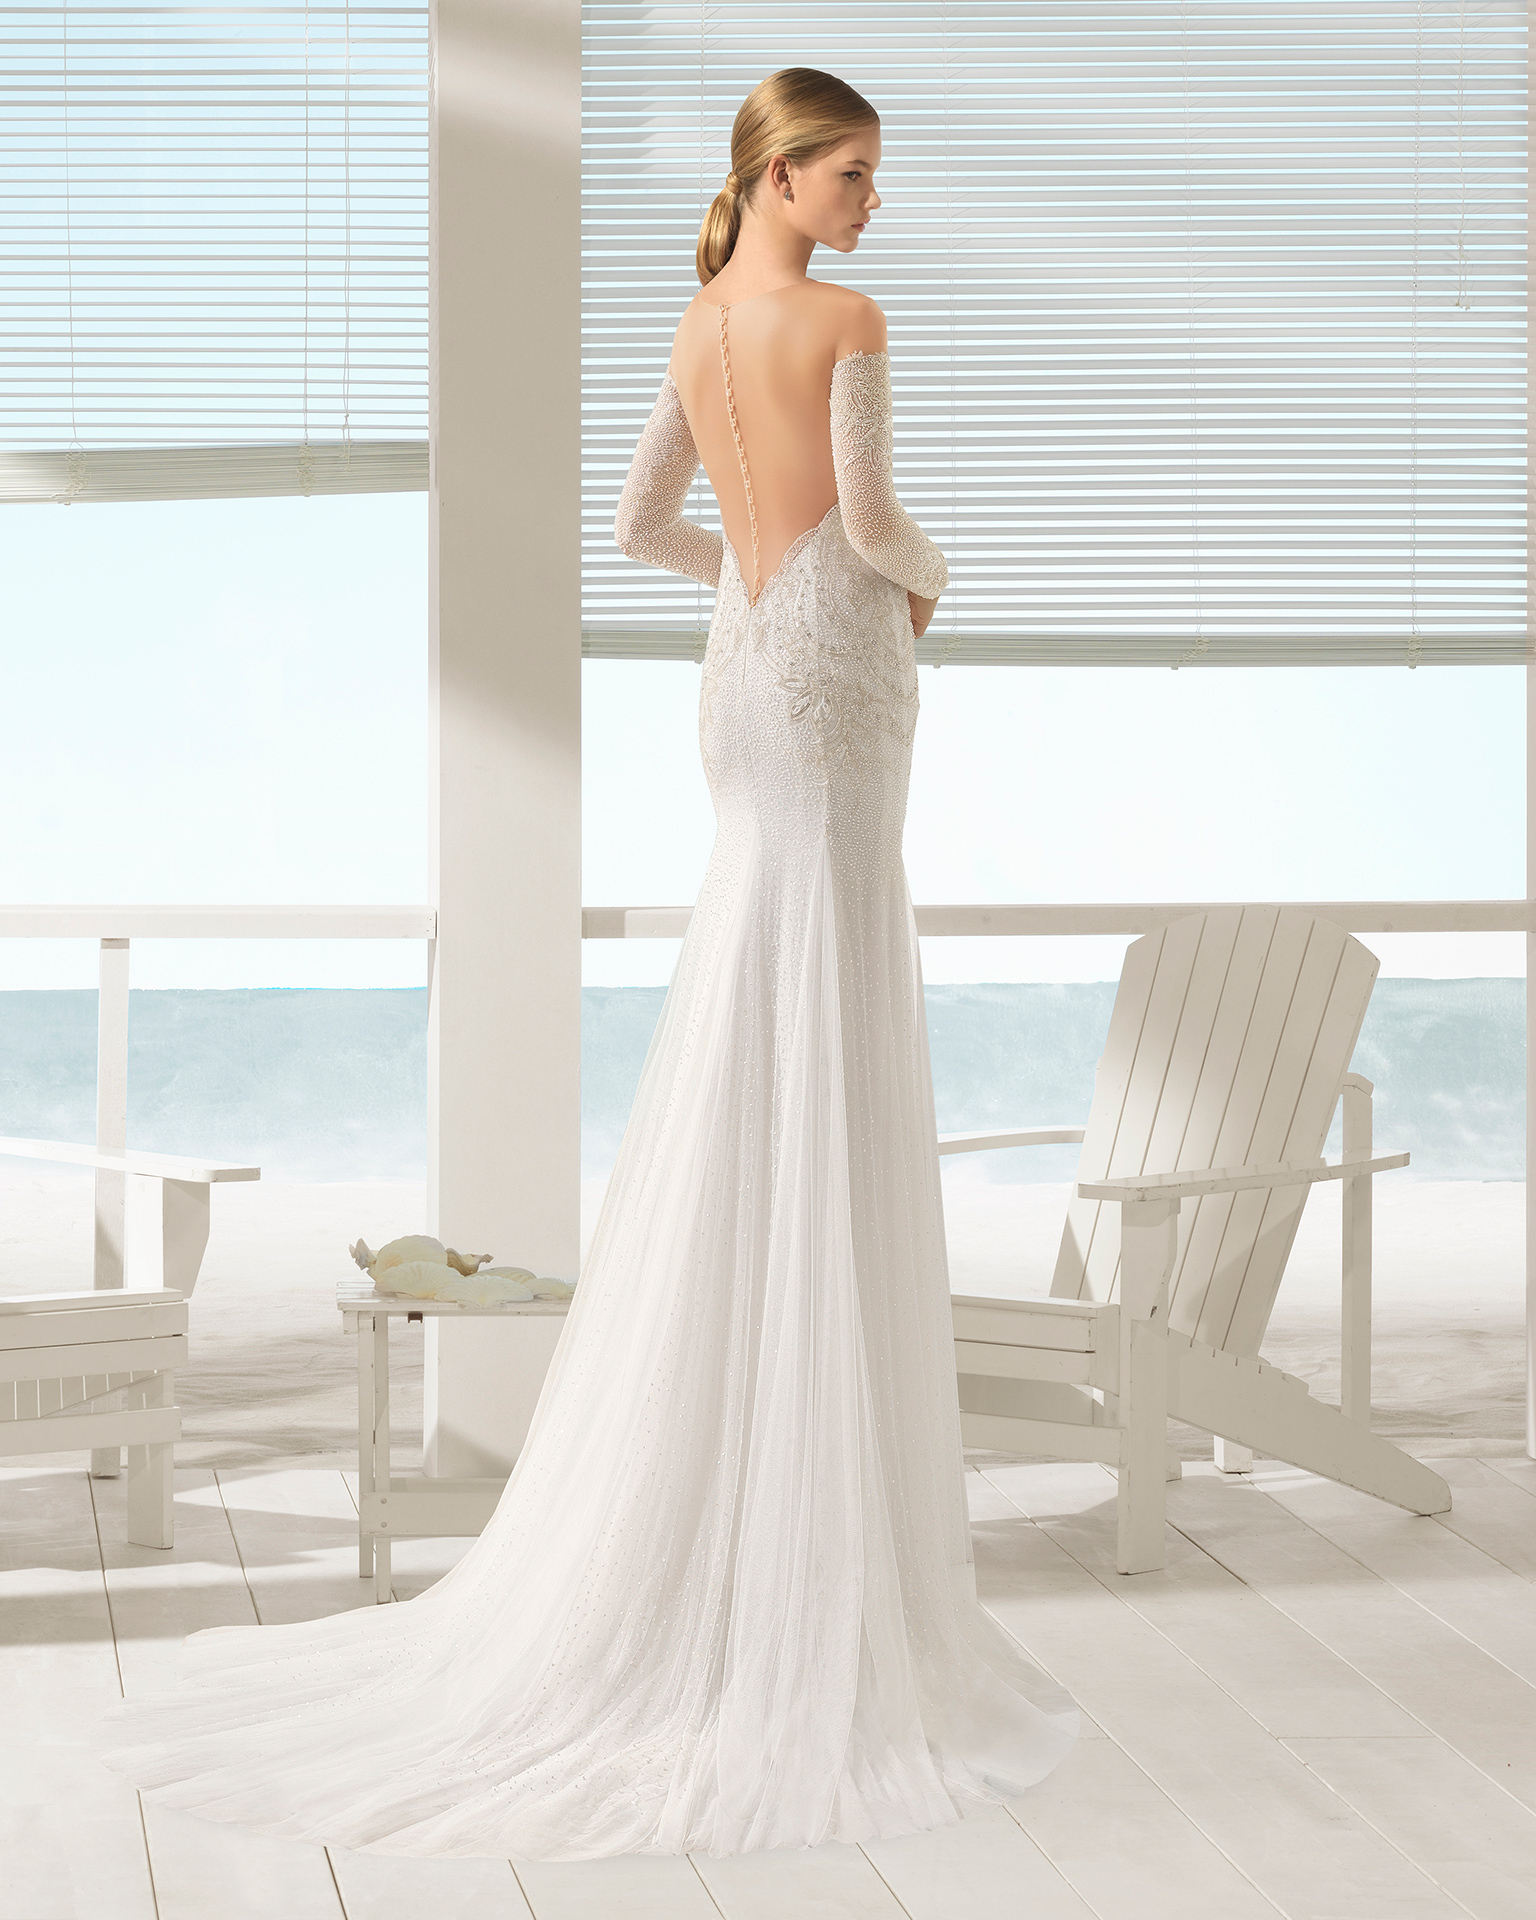 Mermaid-style beaded tulle wedding dress with sweetheart neckline, beaded sleeves and very low back, in natural/nude.